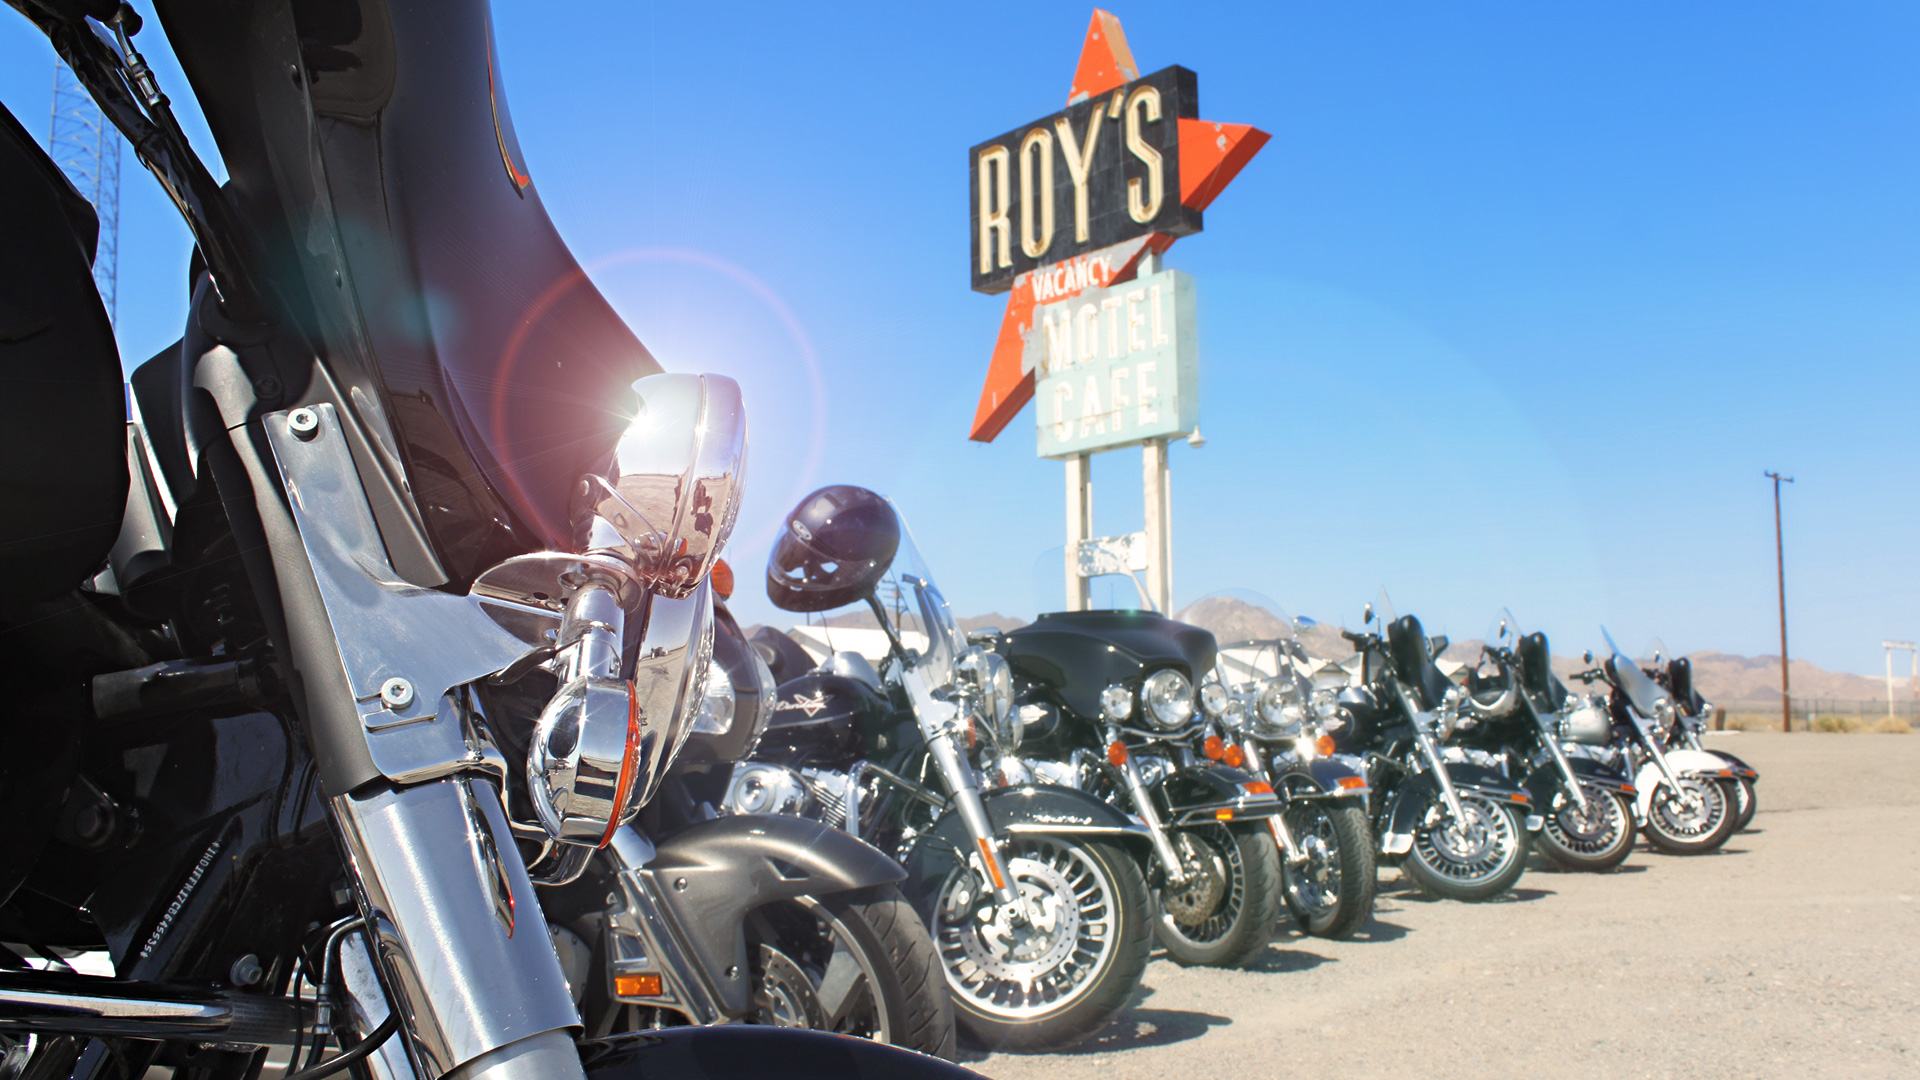 route66-roys